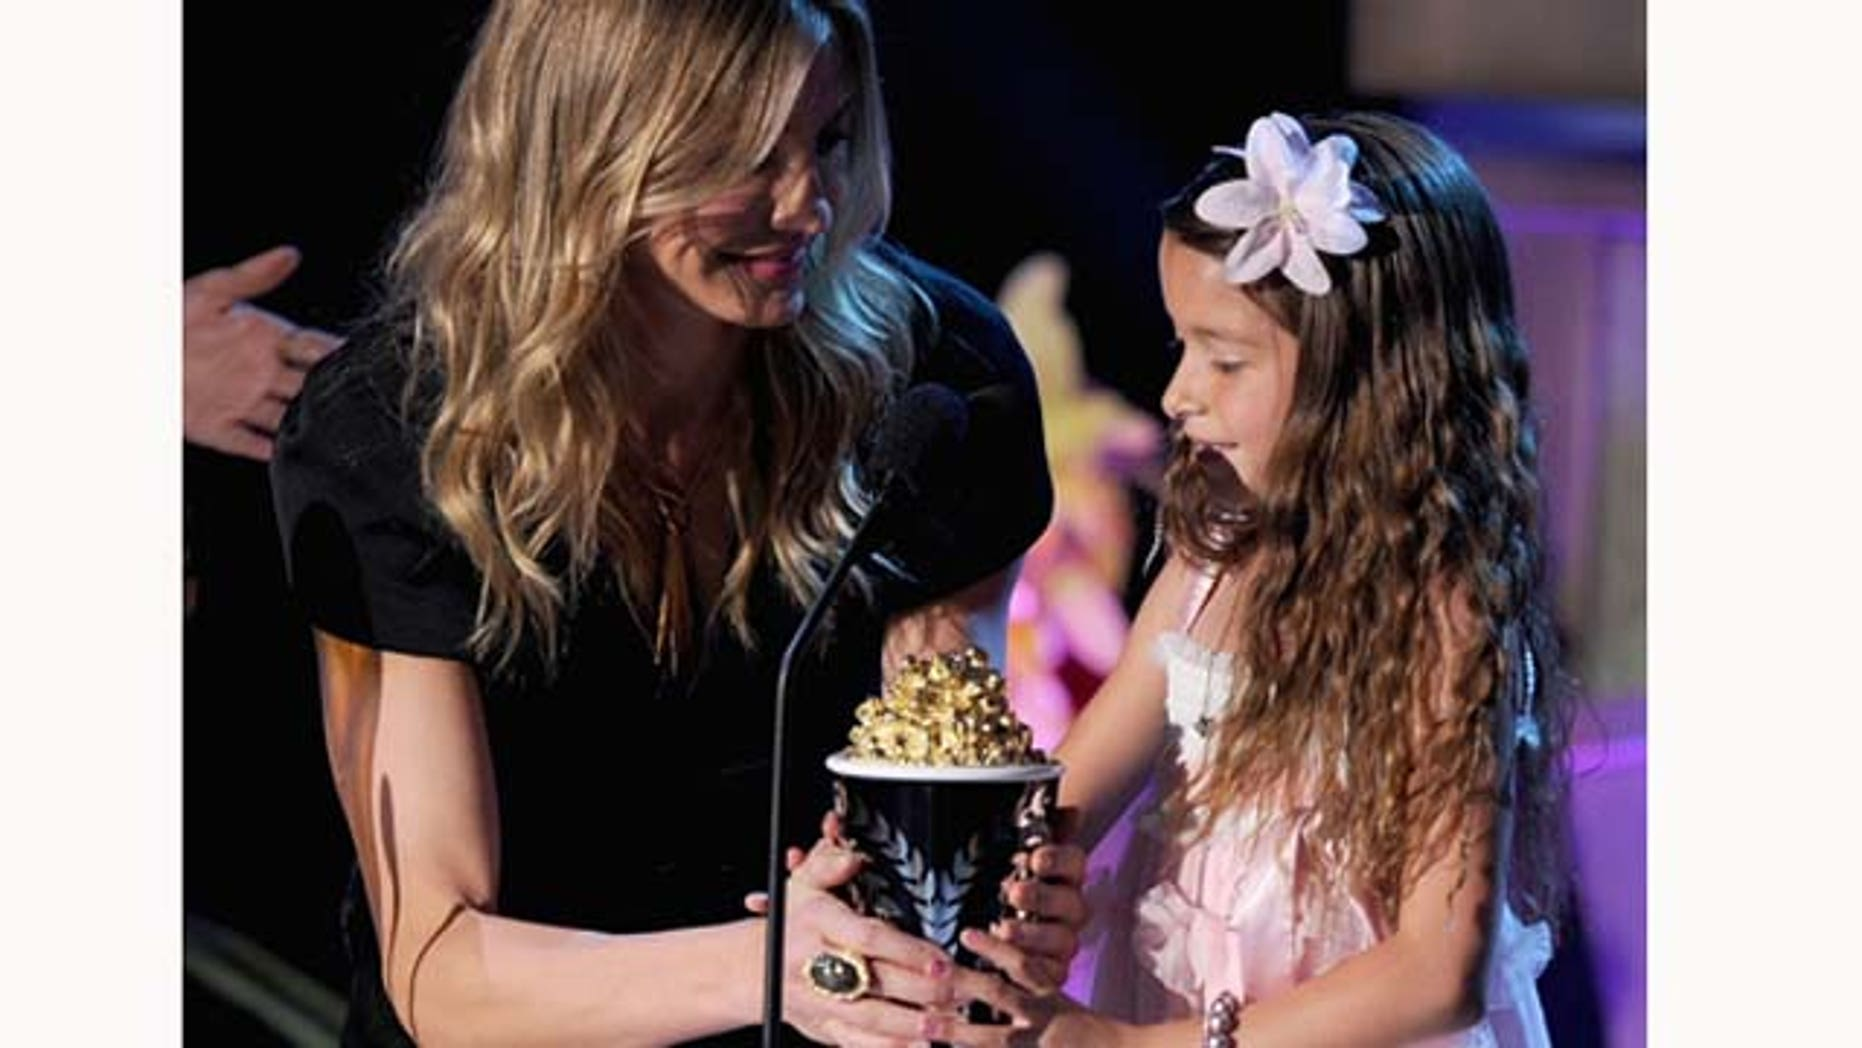 June 5, 2011: Actress Cameron Díaz presents the Best Line From A Movie award to actress Alexys Nycole Sánchez onstage during the 2011 MTV Movie Awards at Universal Studios' Gibson Amphitheatre on June 5, 2011 in Universal City, Calif.